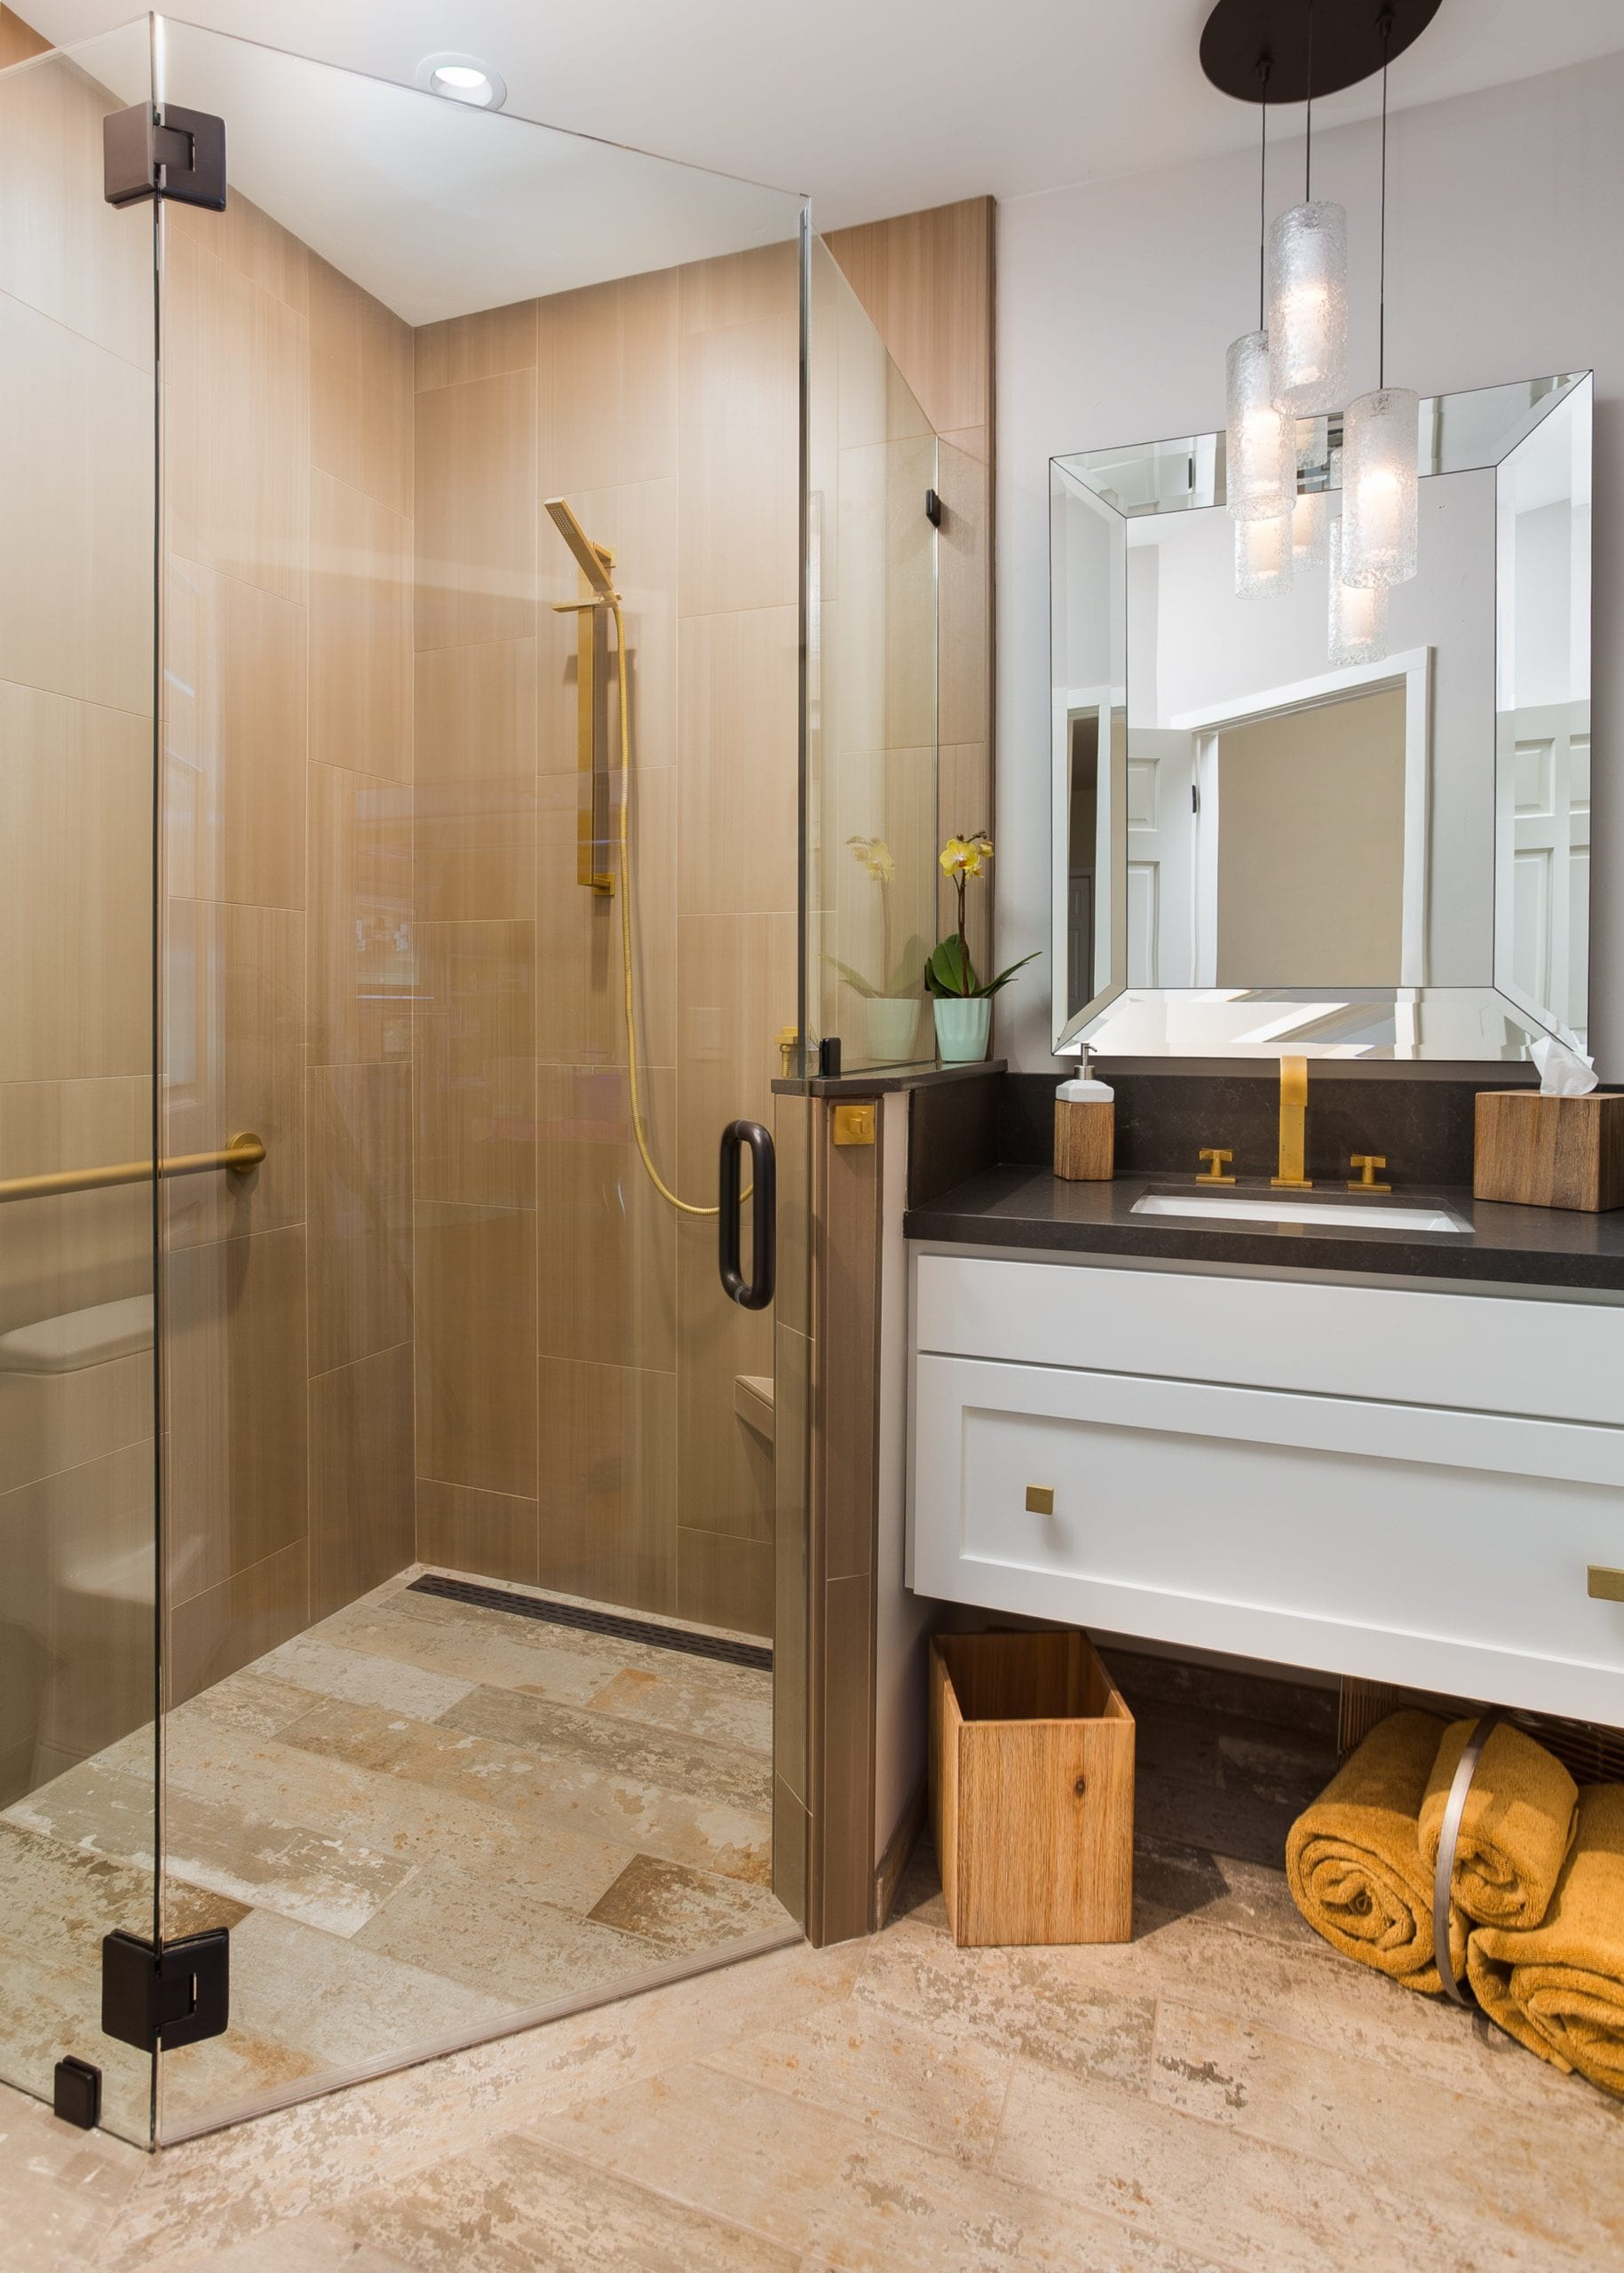 Bathroom with wooden sliding drawer